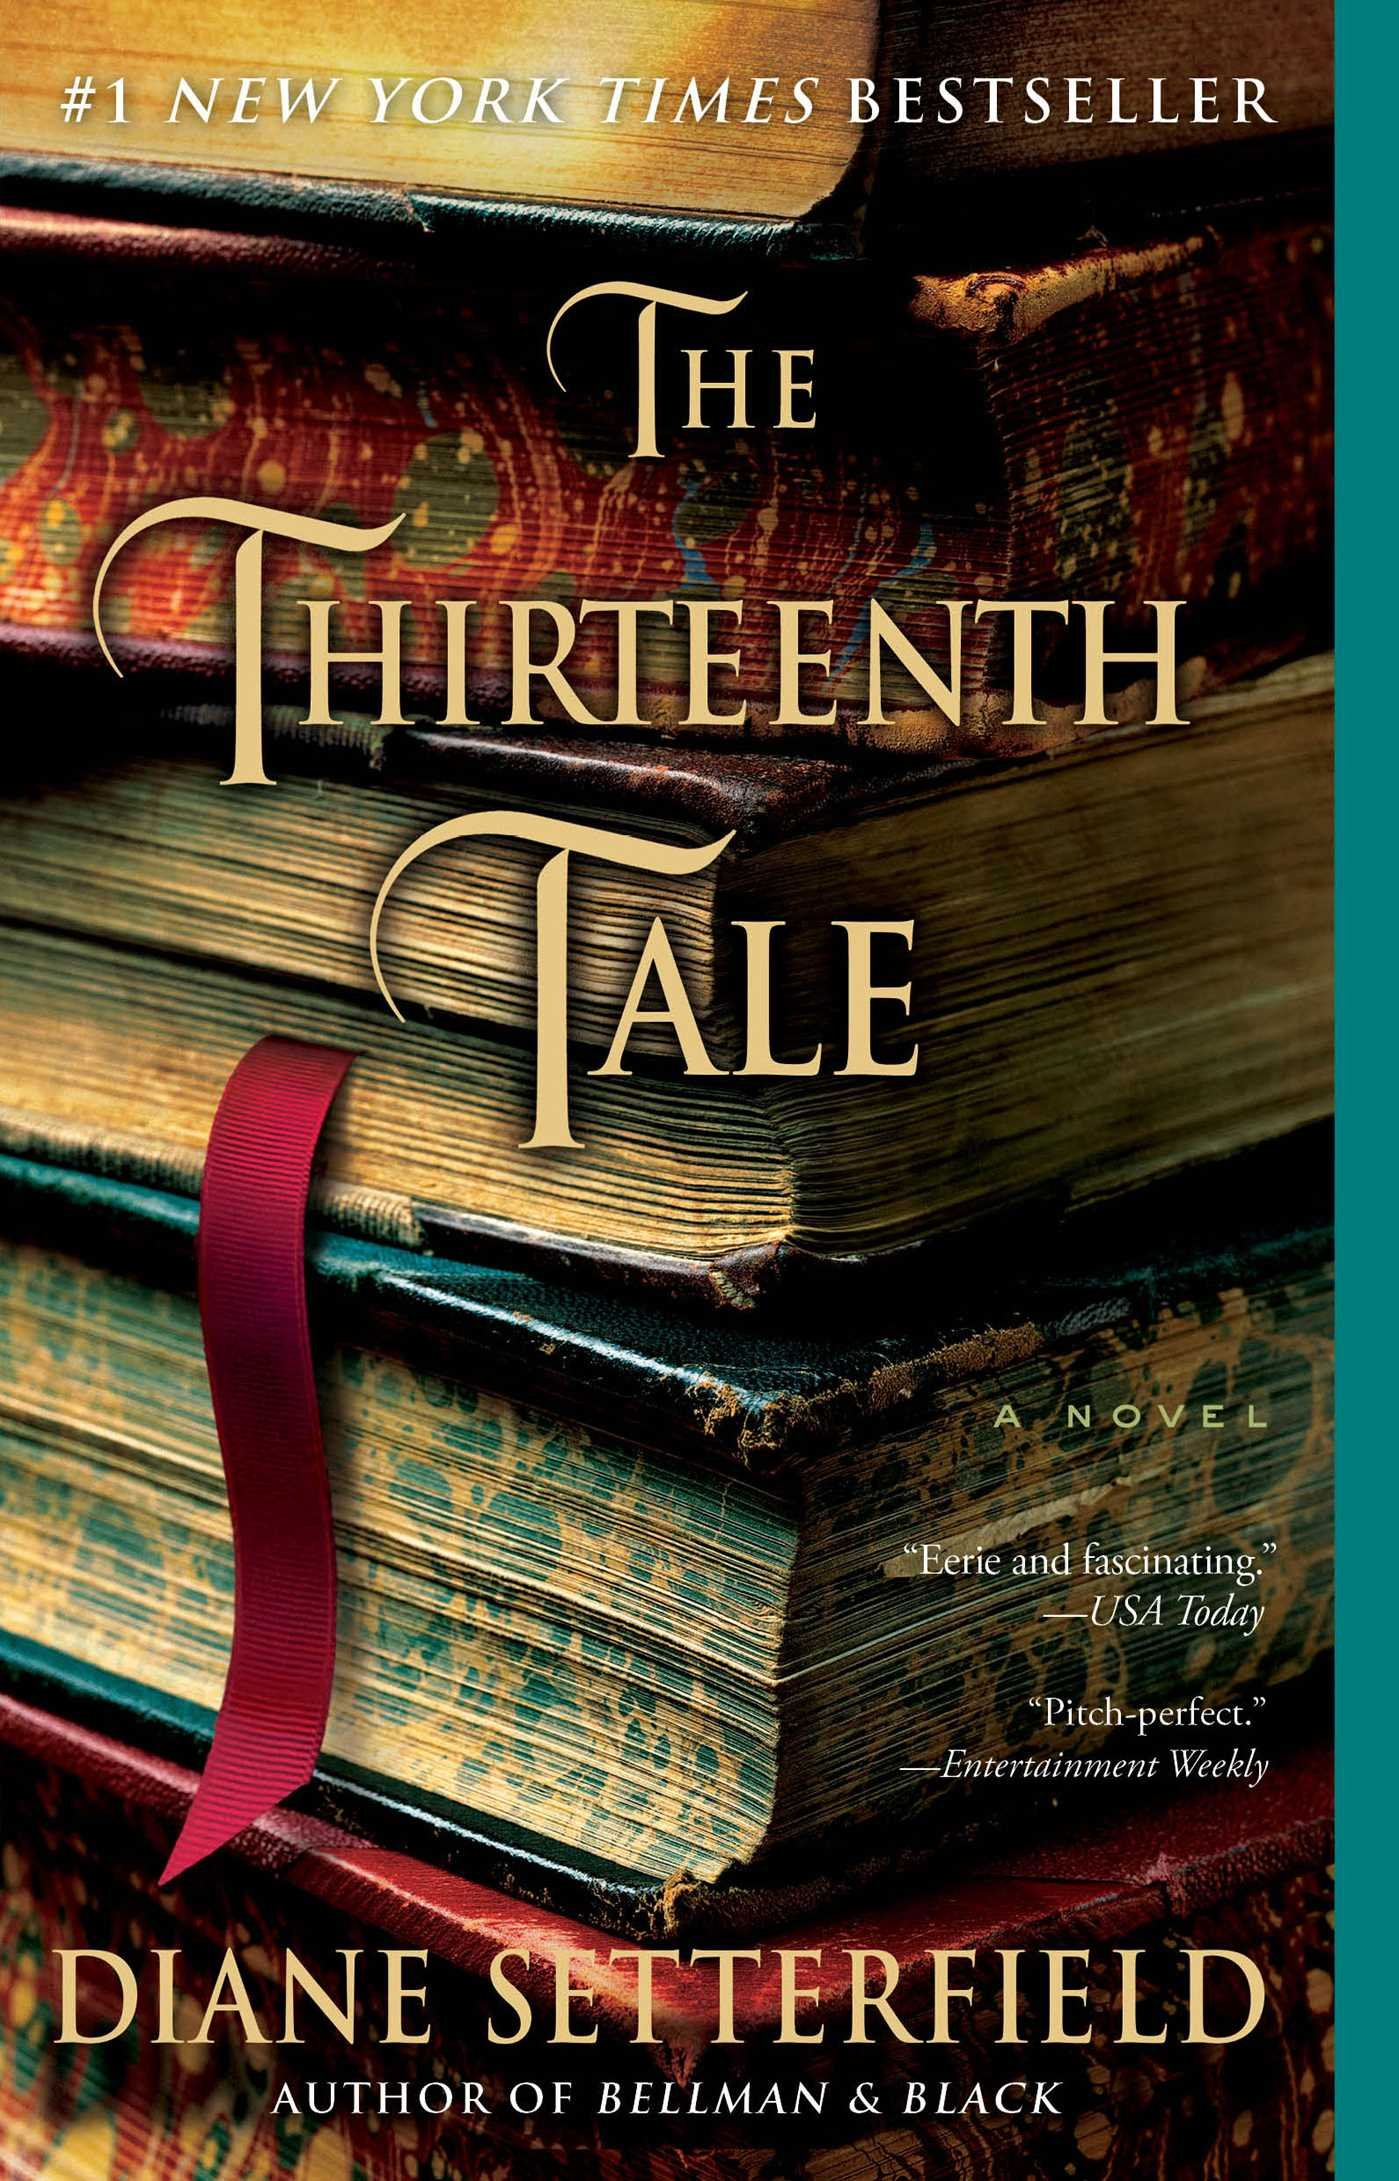 The Thirteenth Tale by Diane Setterfield book cover